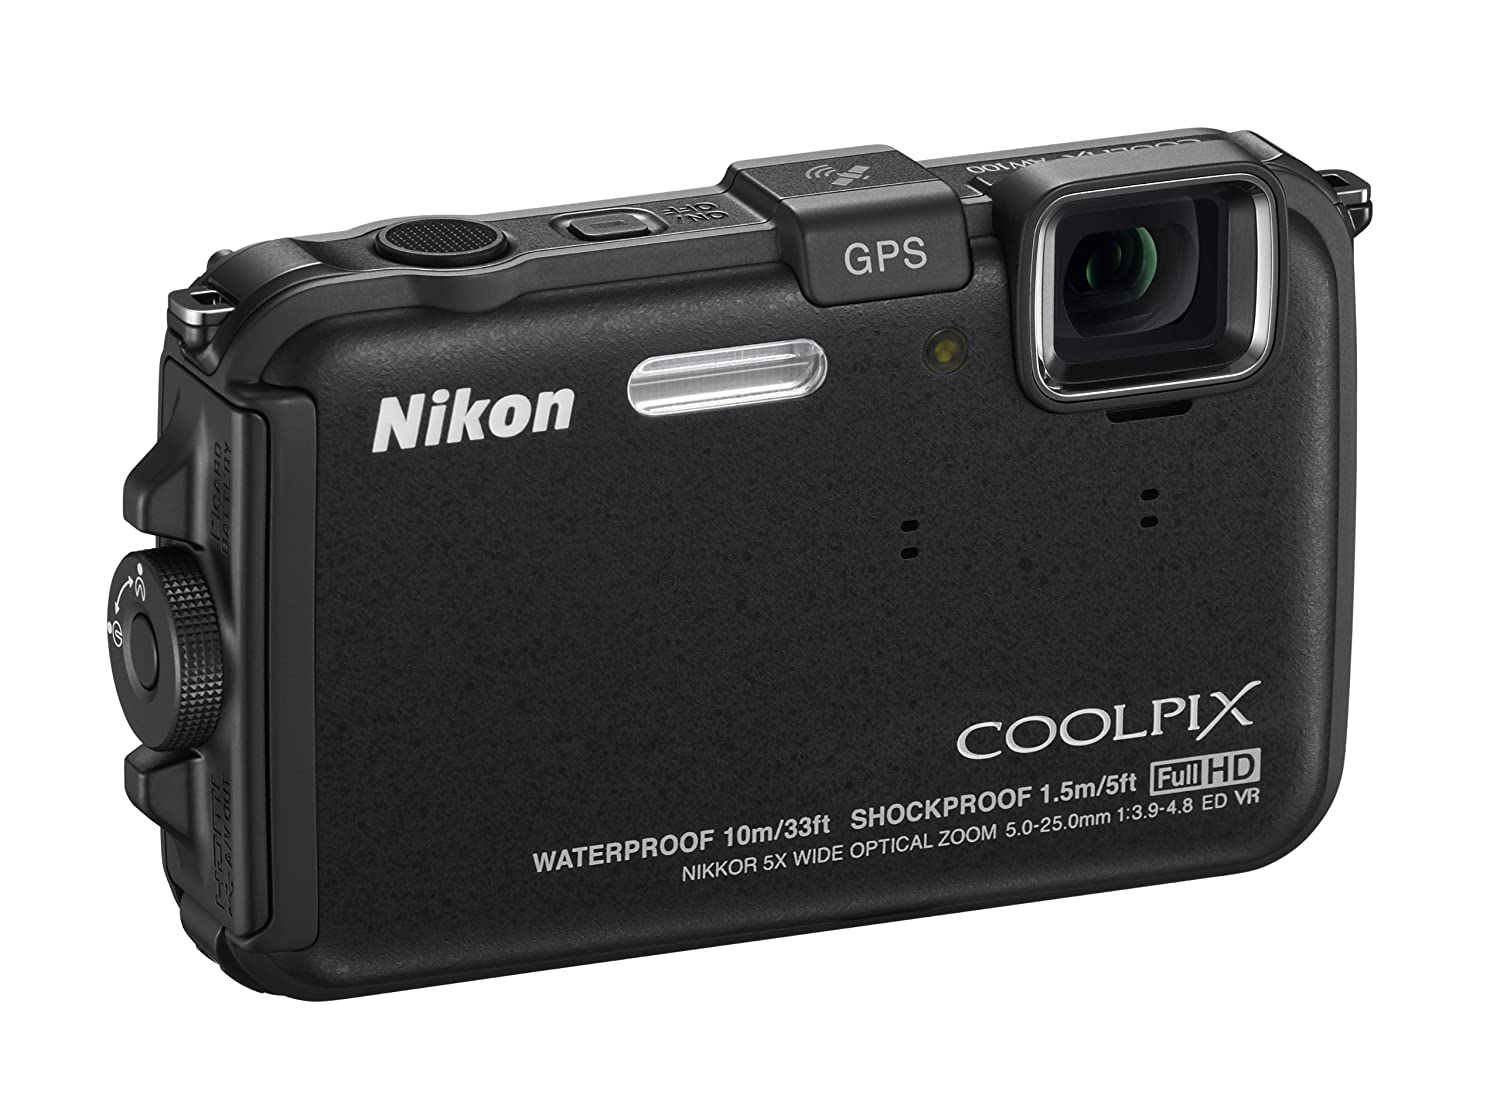 Amazon.com : Nikon COOLPIX AW100 16 MP CMOS Waterproof Digital Camera with  GPS and Full HD 1080p Video (Black) : Point And Shoot Digital Cameras :  Camera & ...